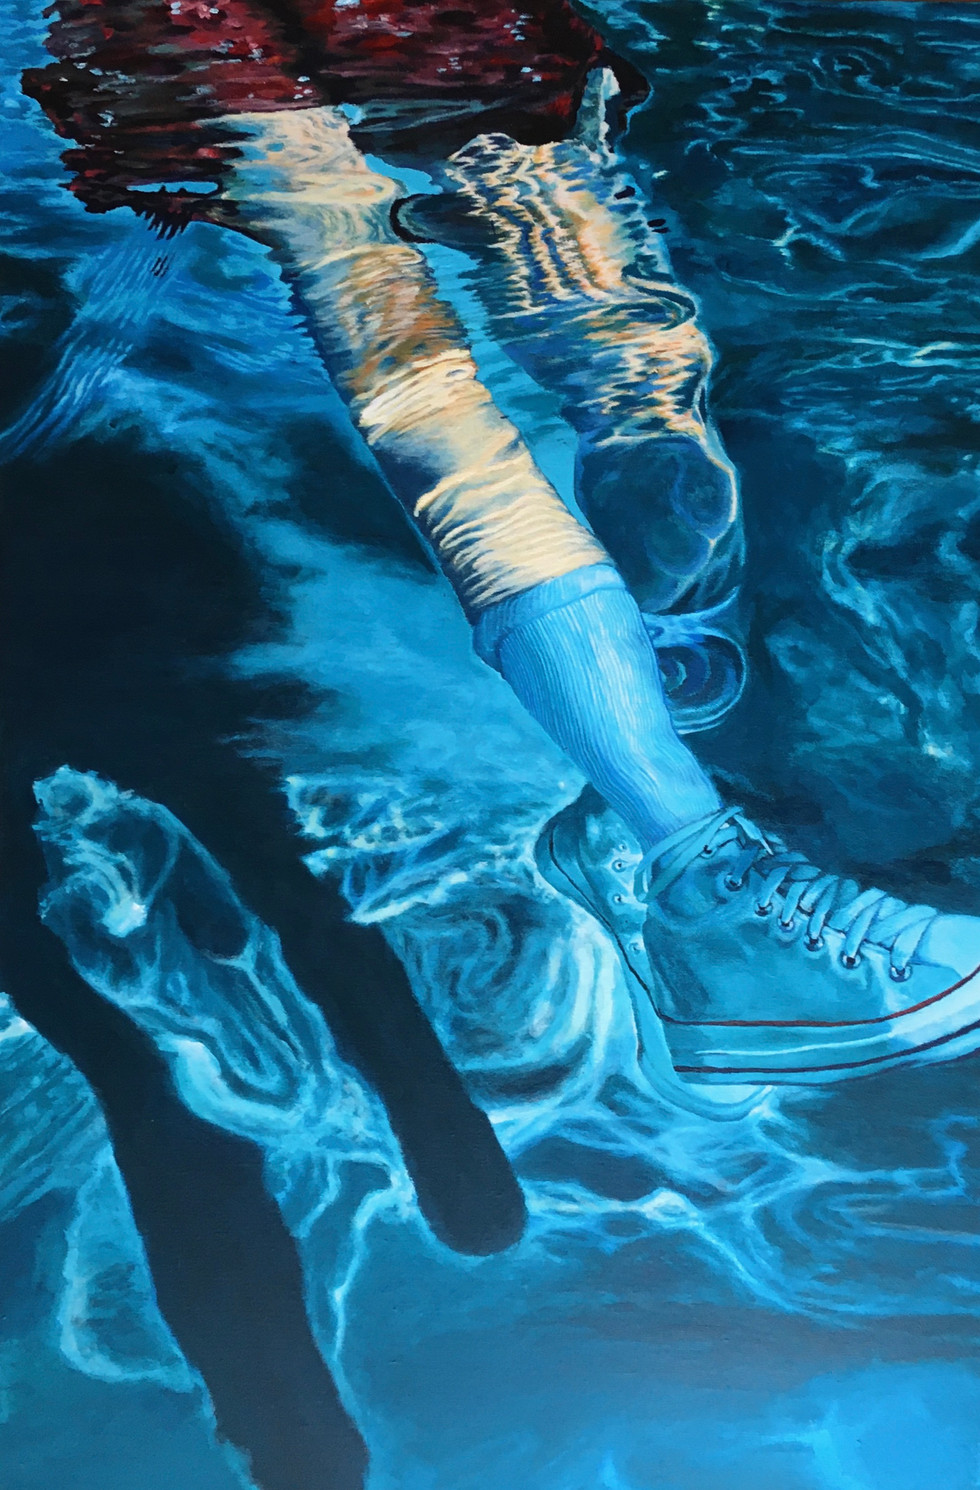 sneakers // acrylic on canvas 24x36 in